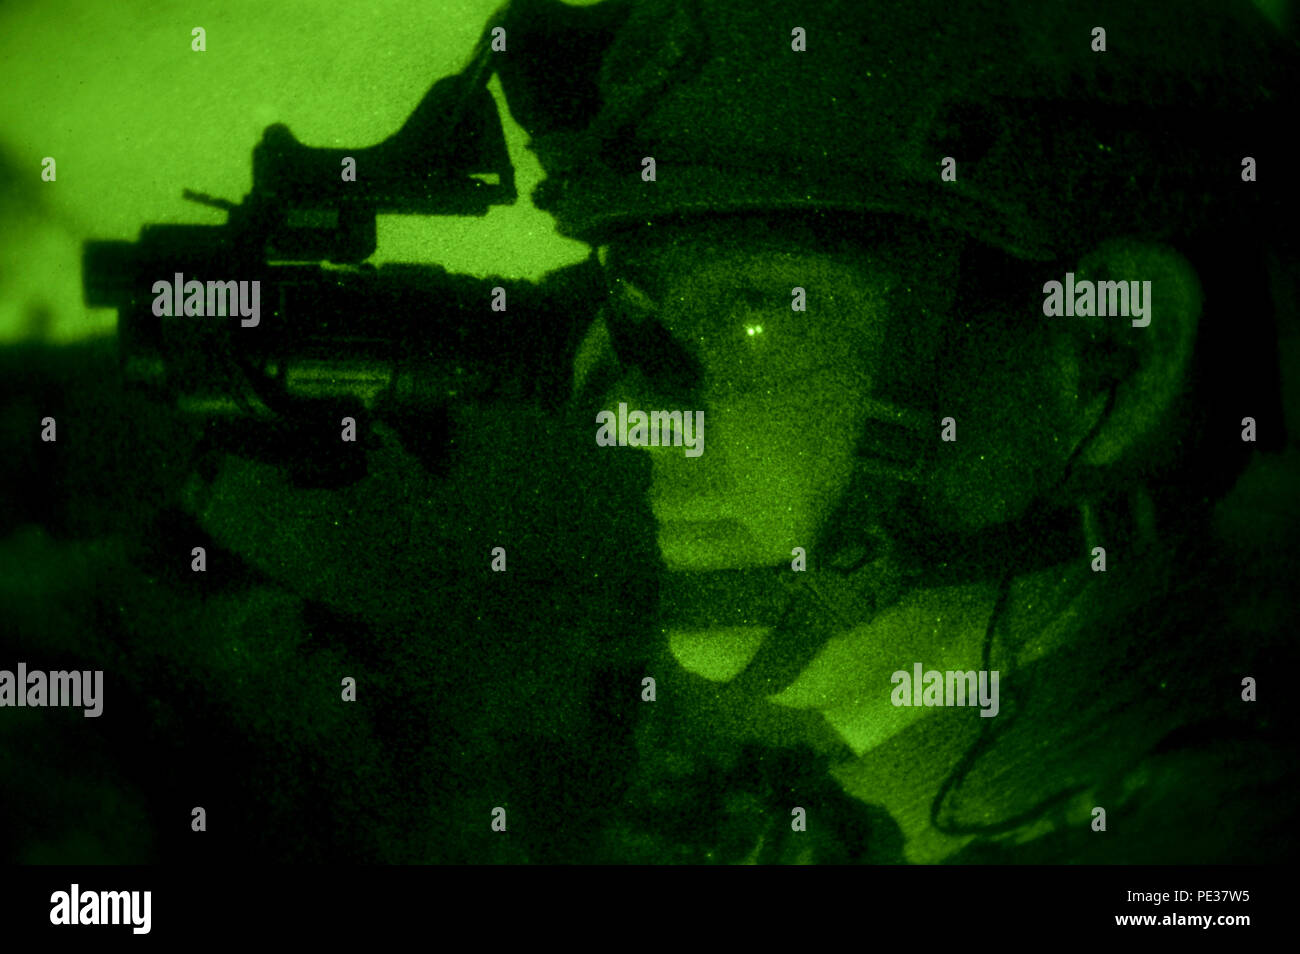 Staff Sgt. Douglas Gideon, 3rd Combat Camera Squadron, cyber transport technician, uses night vision to scan the area during a night iteration of Advanced Weapons and Tactics Training, Sept. 10, 2015, in Converse, Texas. The two-week course taught combat camera Airmen shooting fundamentals, weapons transitioning, shooting on the move and engaging threats in low-light conditions. (U.S. Air Force photo by Senior Airman Colville McFee) - Stock Image